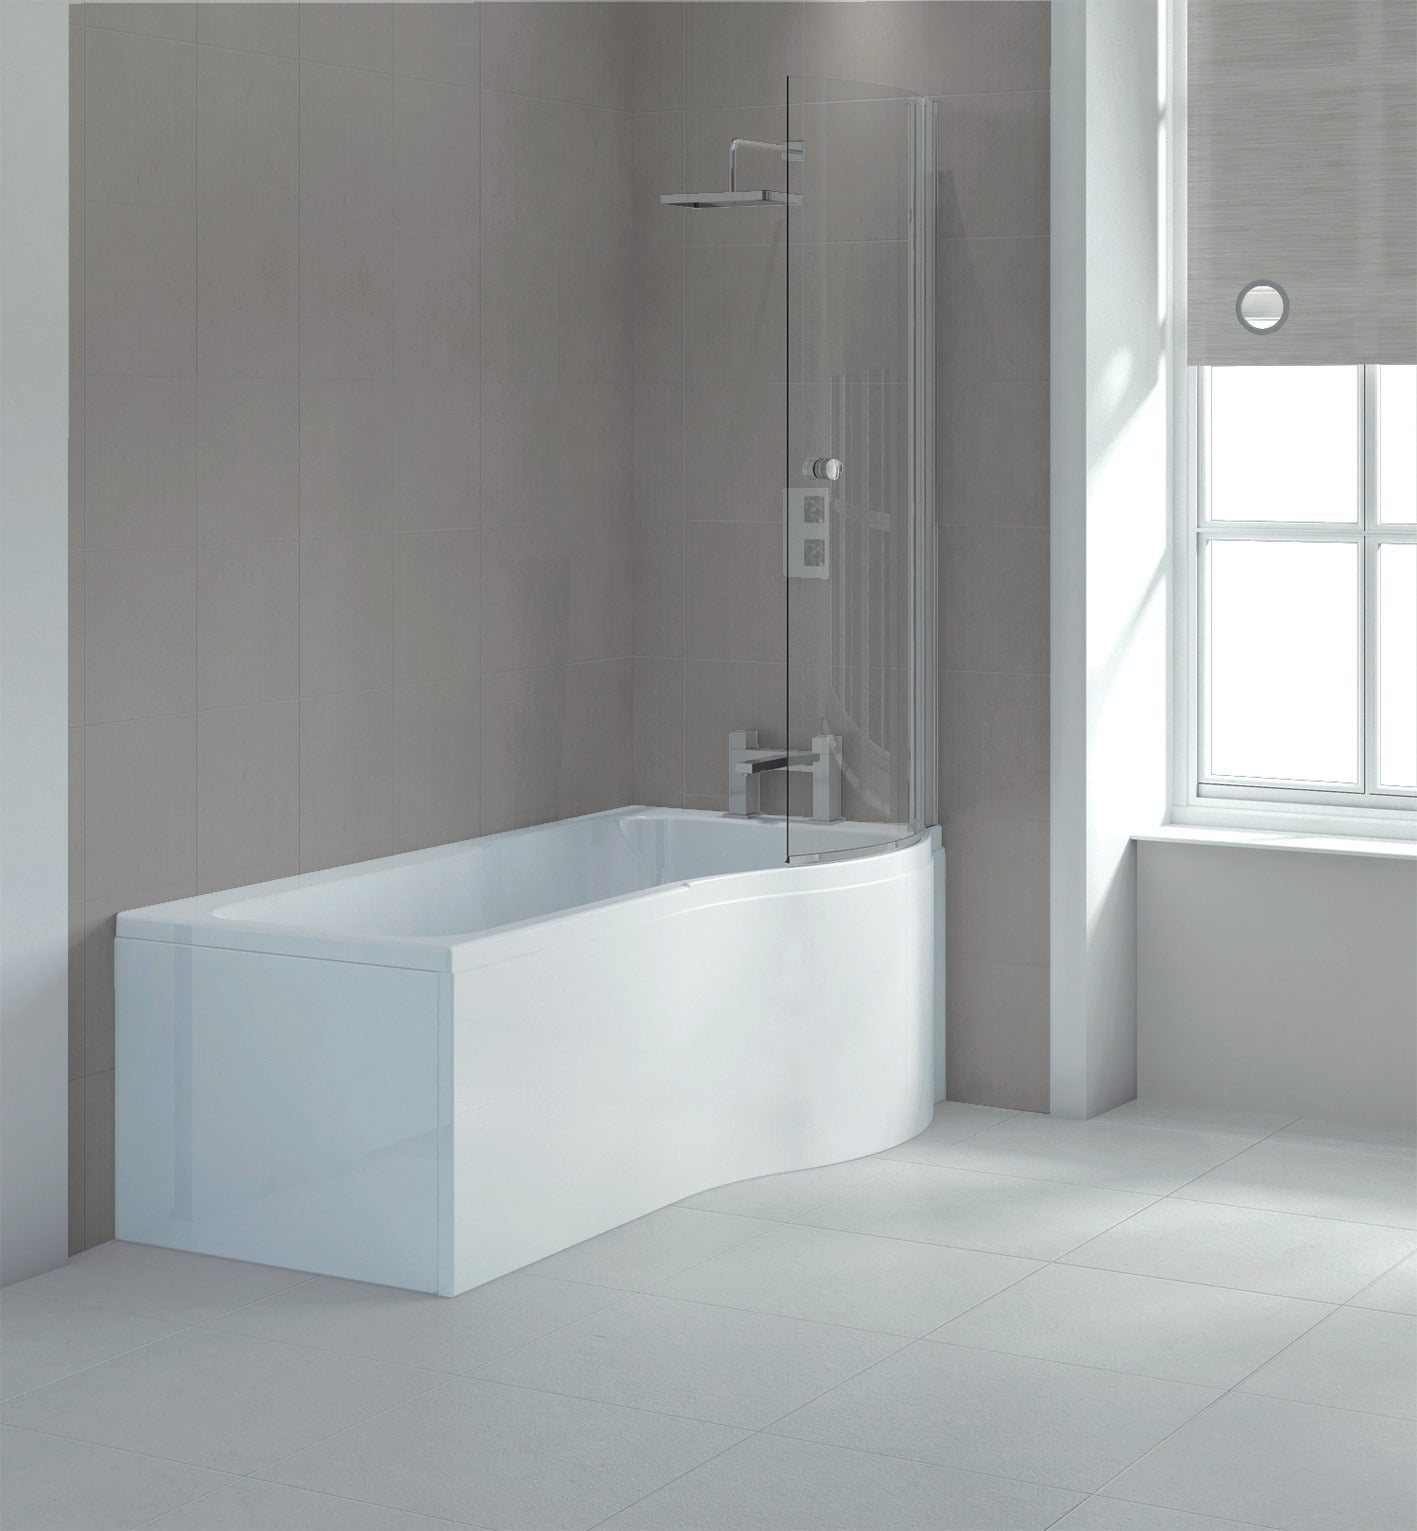 Sommer  Ecoround Shower Bath - blueskybathrooms